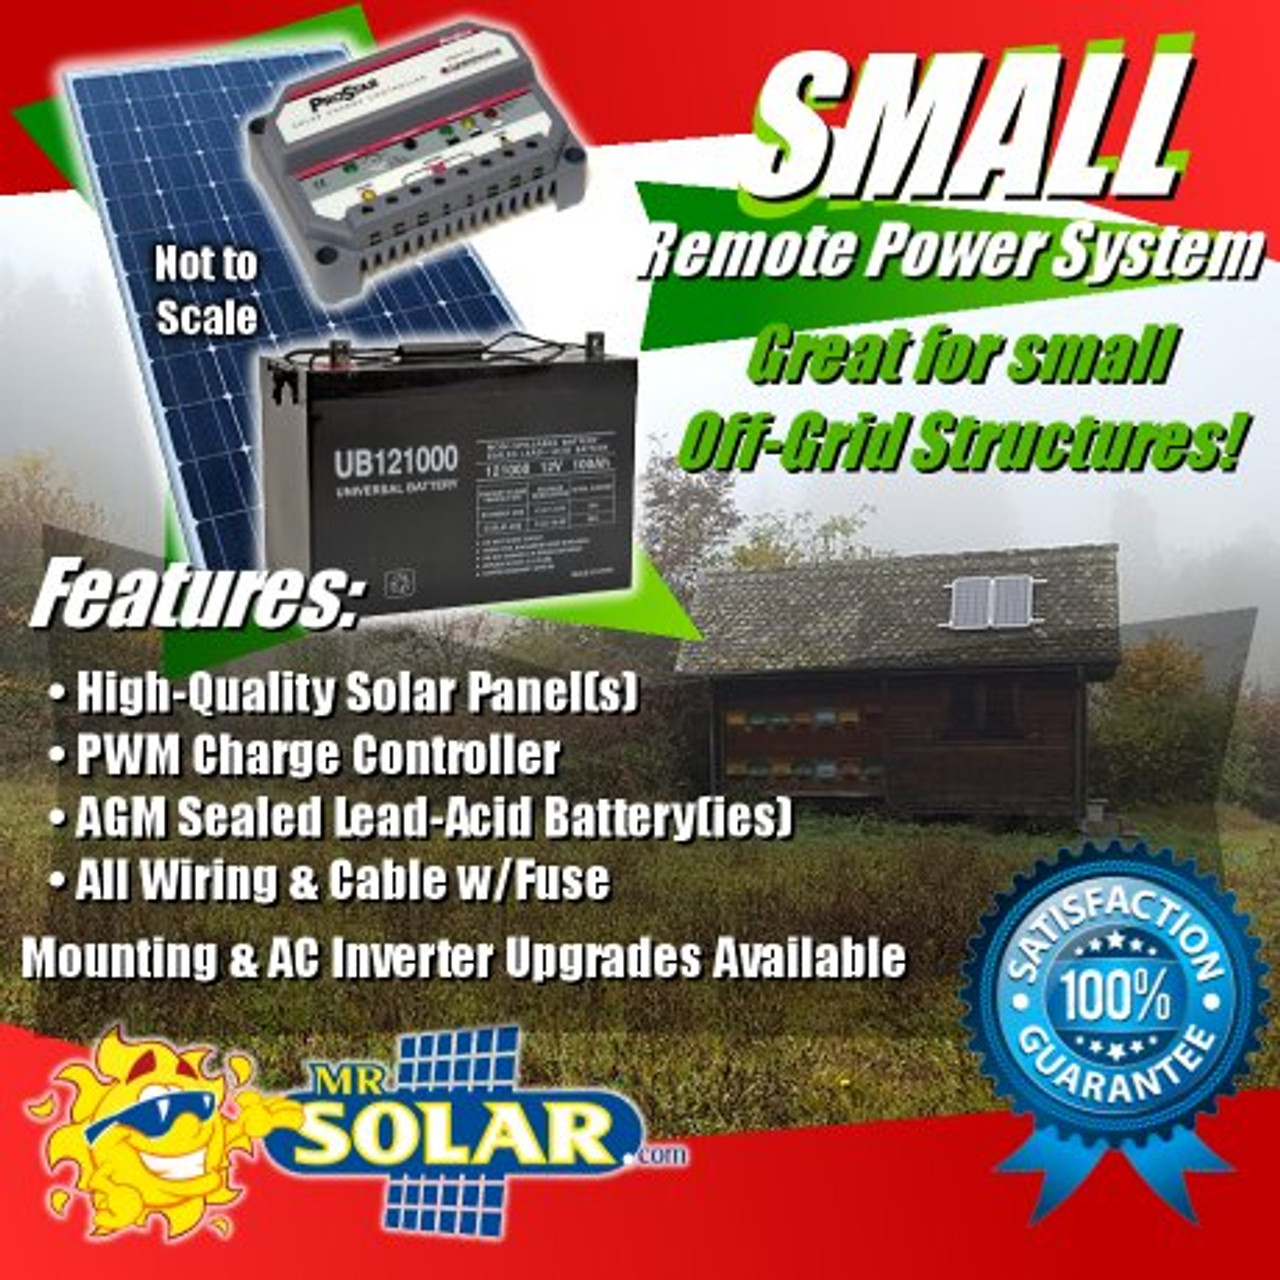 170w Small Remote Power System Kit